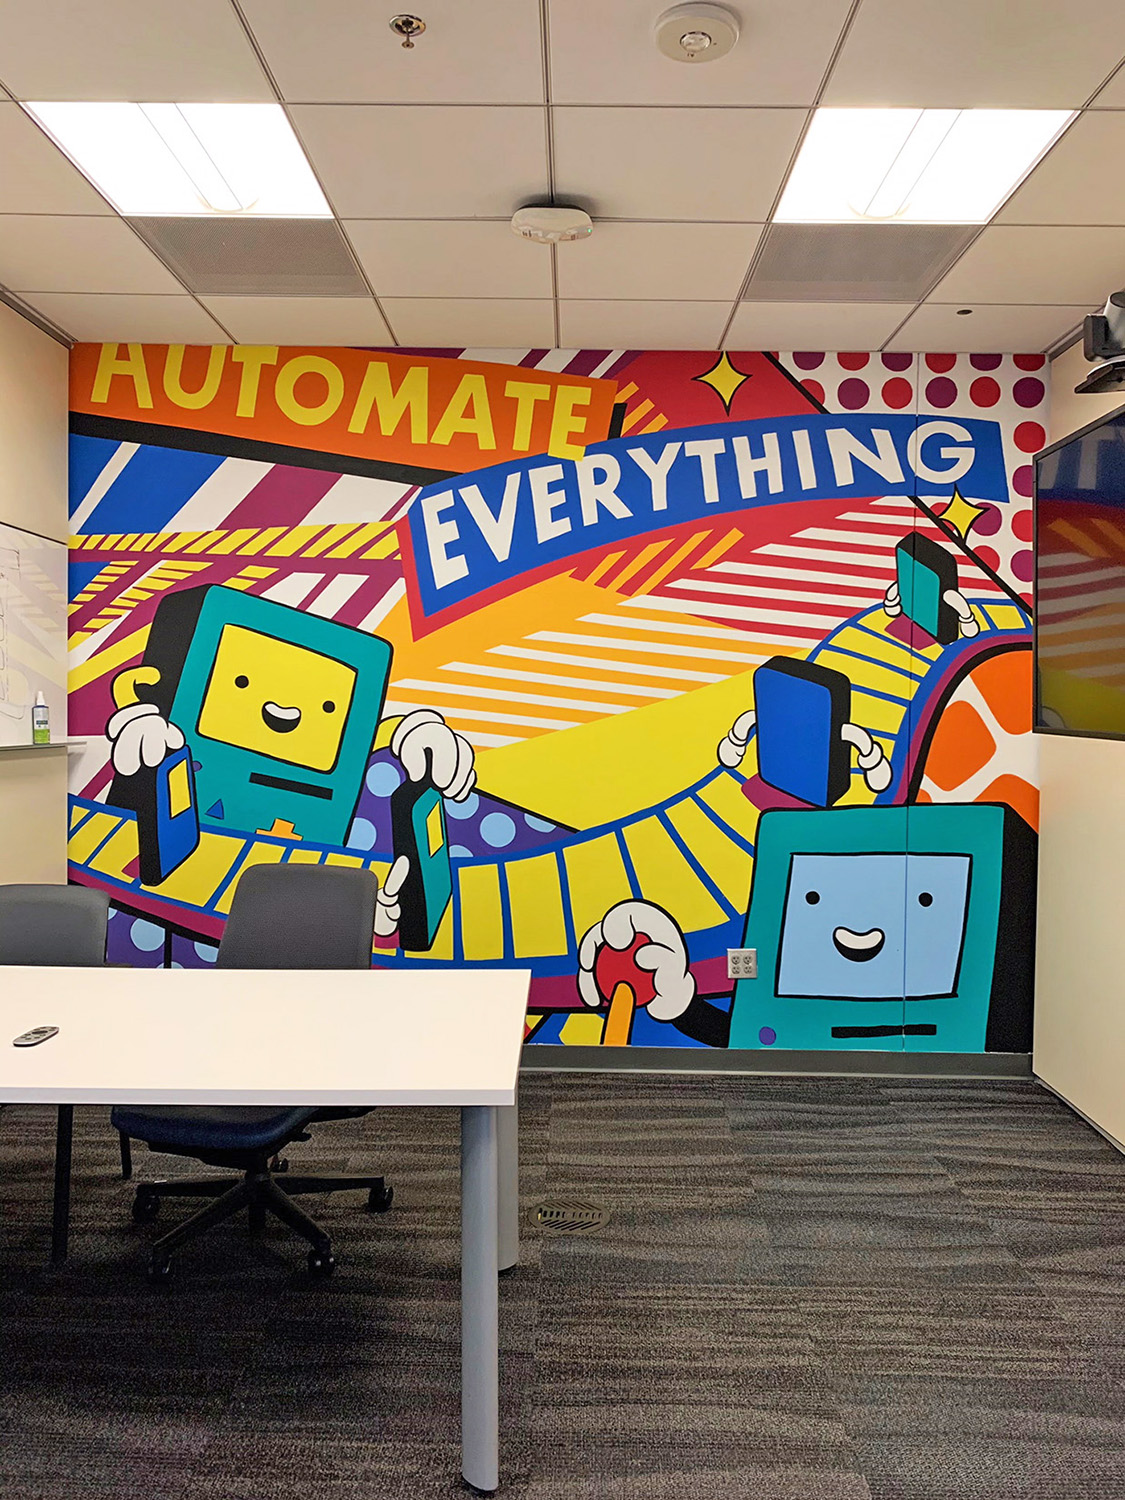 Automate Everything Robot Mural in Phoenix